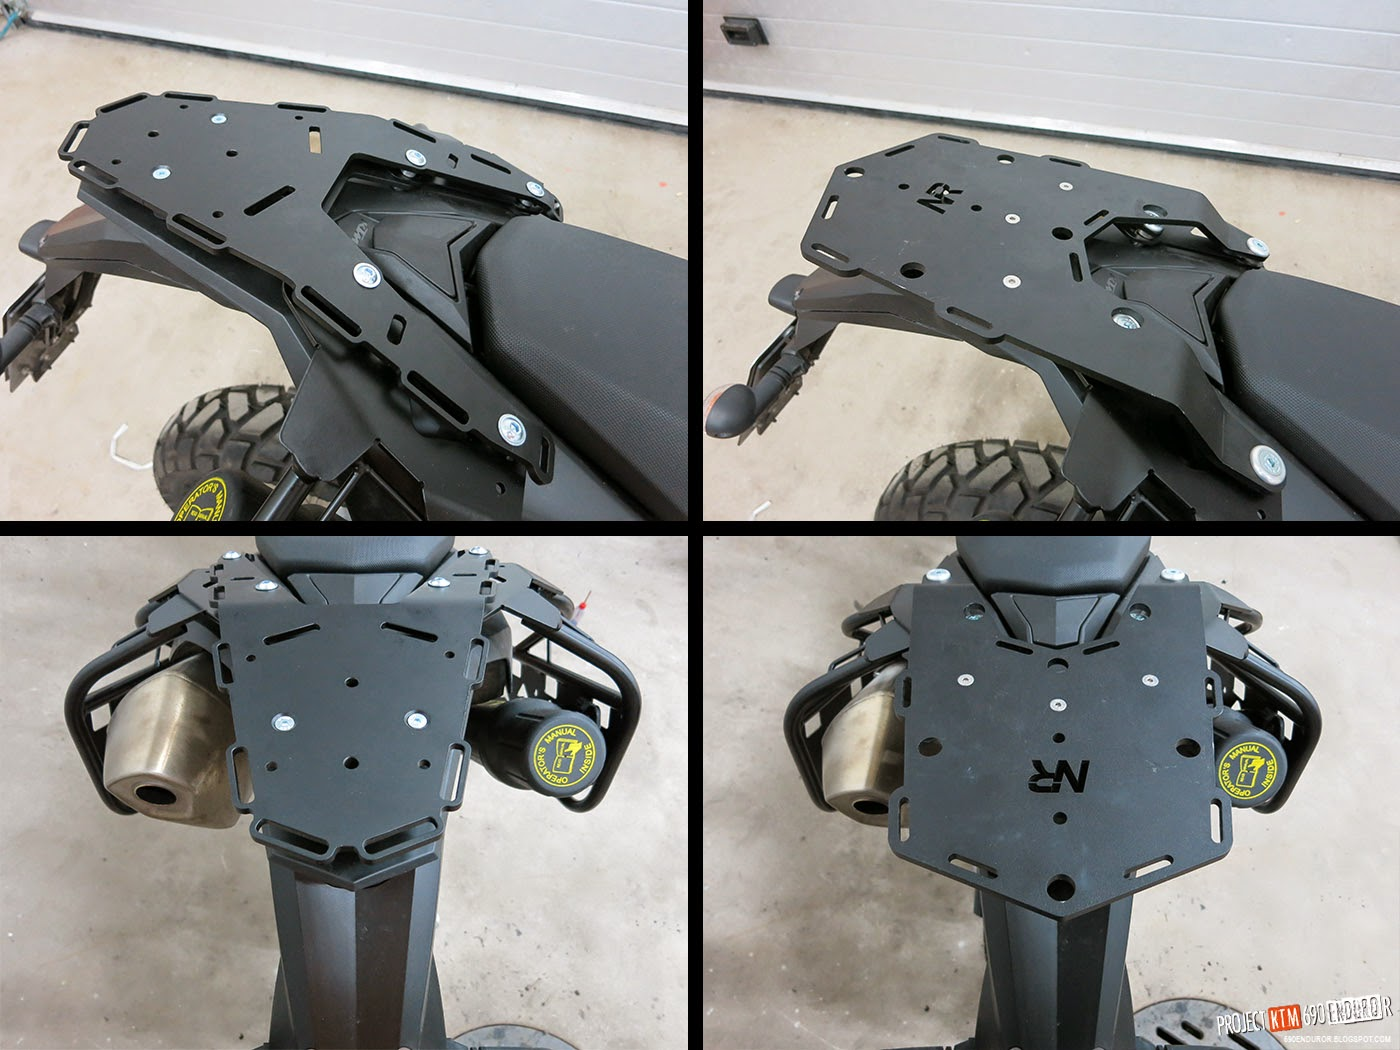 Perun Moto rear rack and and Nomadic rear rack comparison